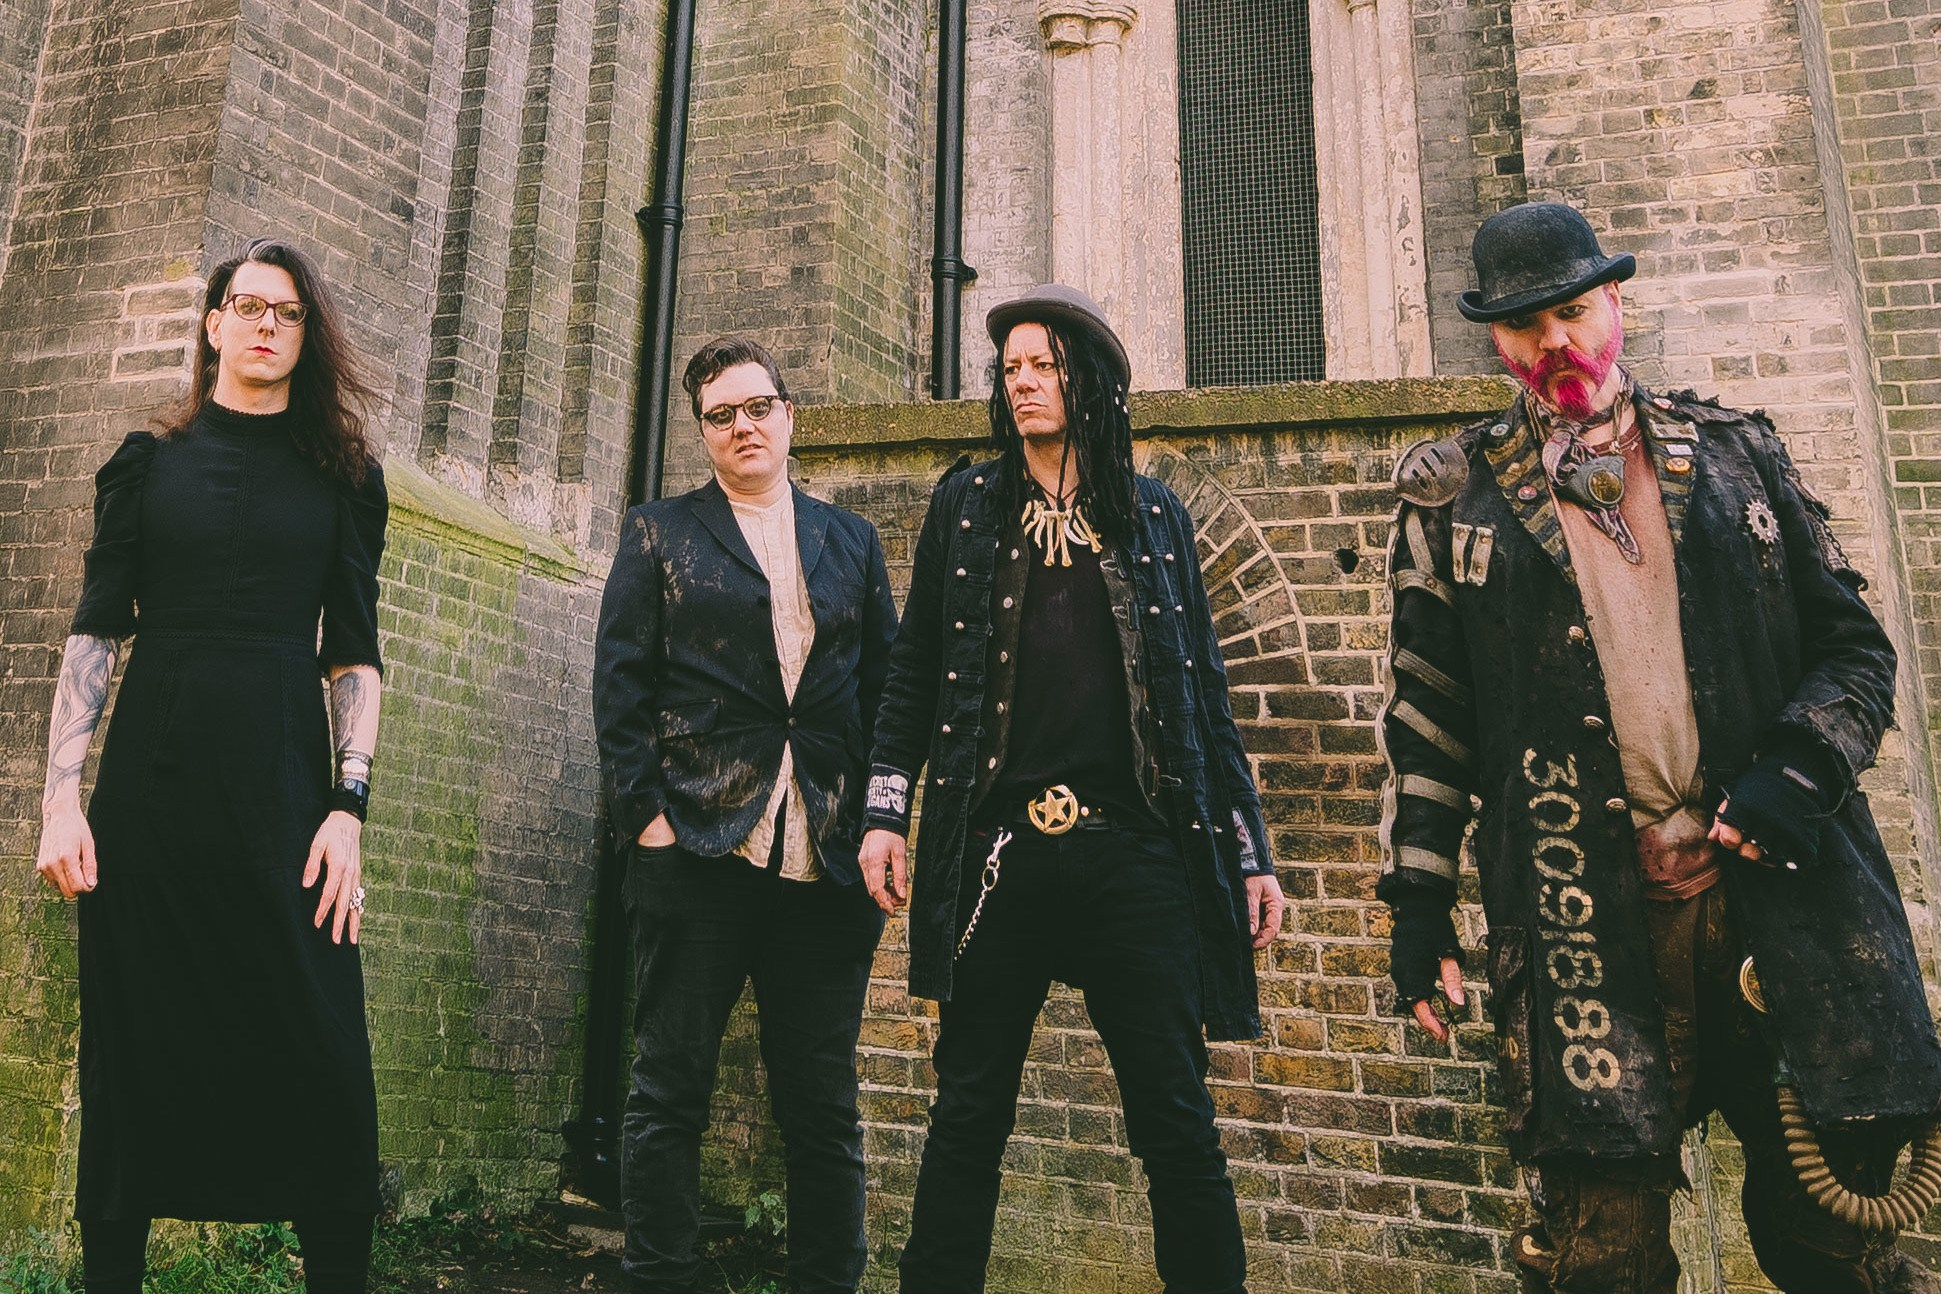 The Men That Will Not Be Blamed For Nothing image